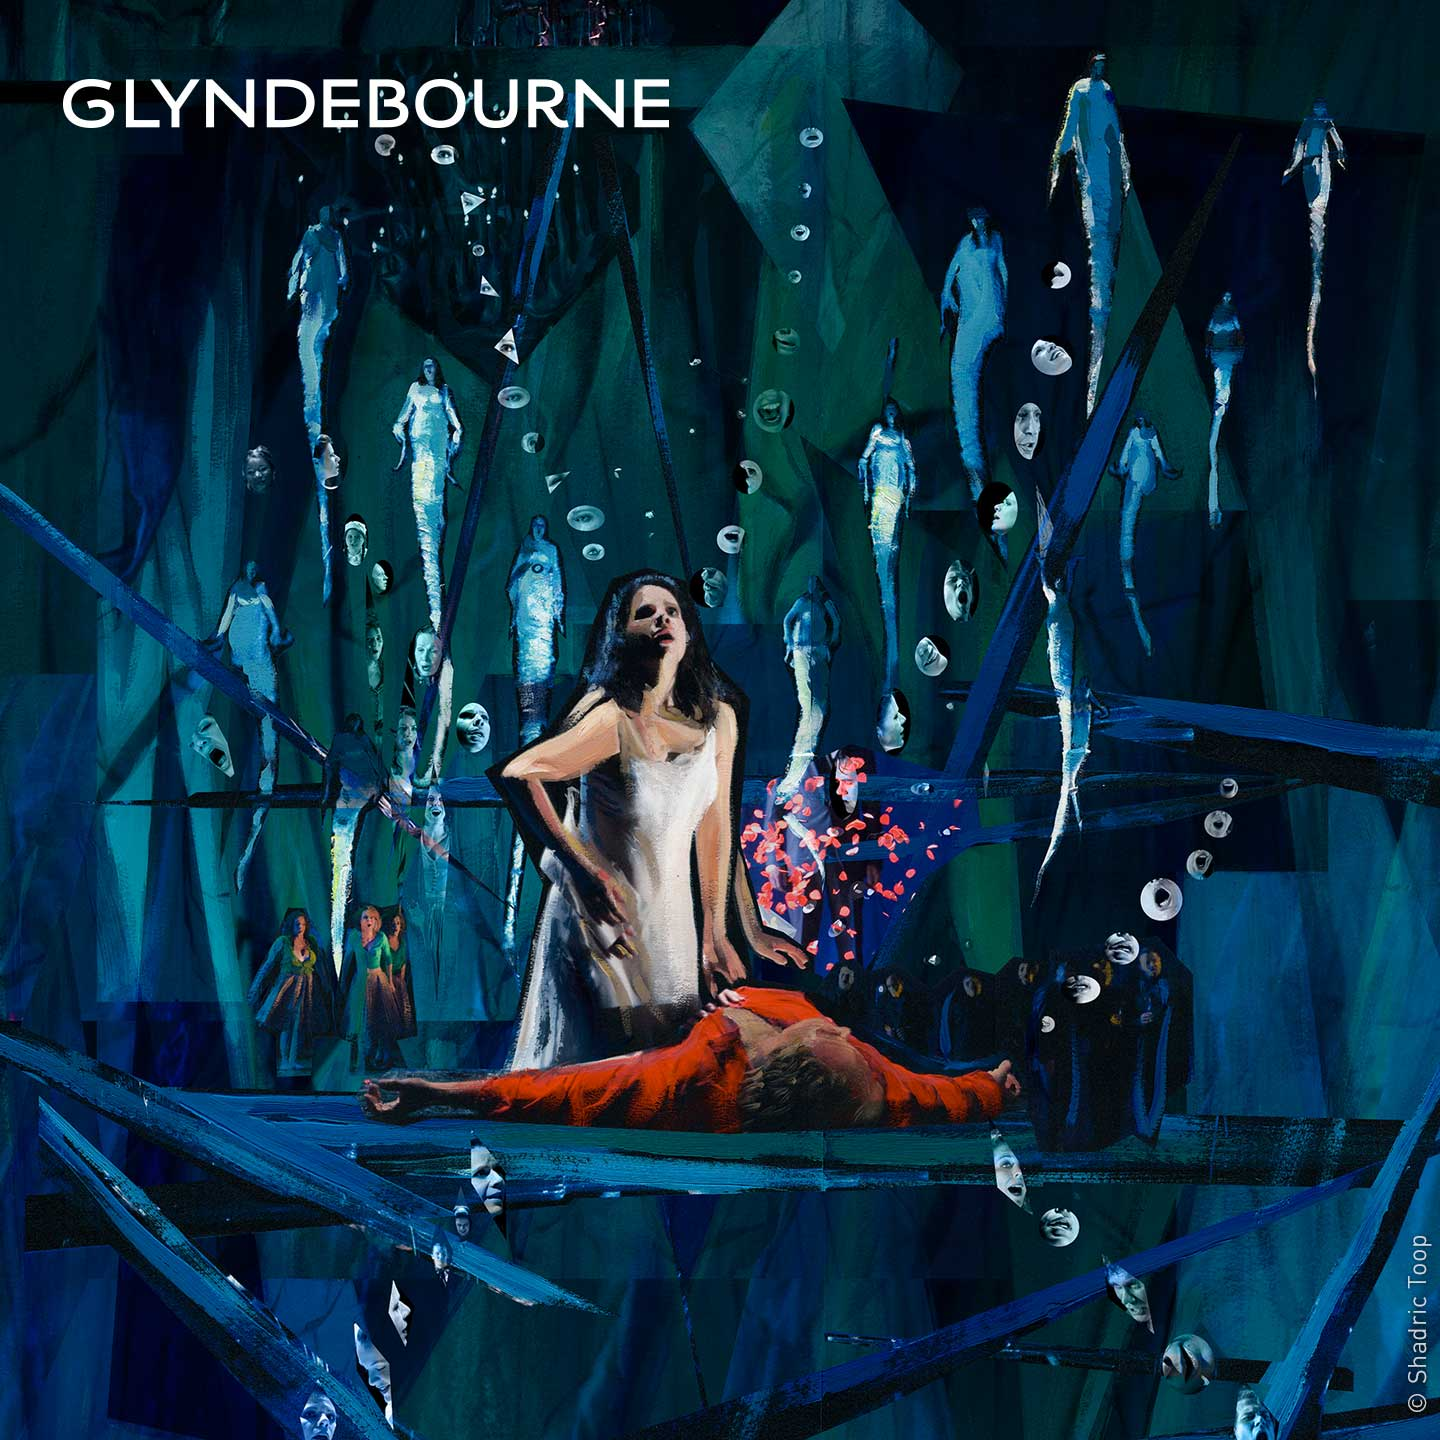 Glyndebourne Festival 2019 Rusalka illustration showing the main characters of the opera within a surreal blue green world with water nymphs